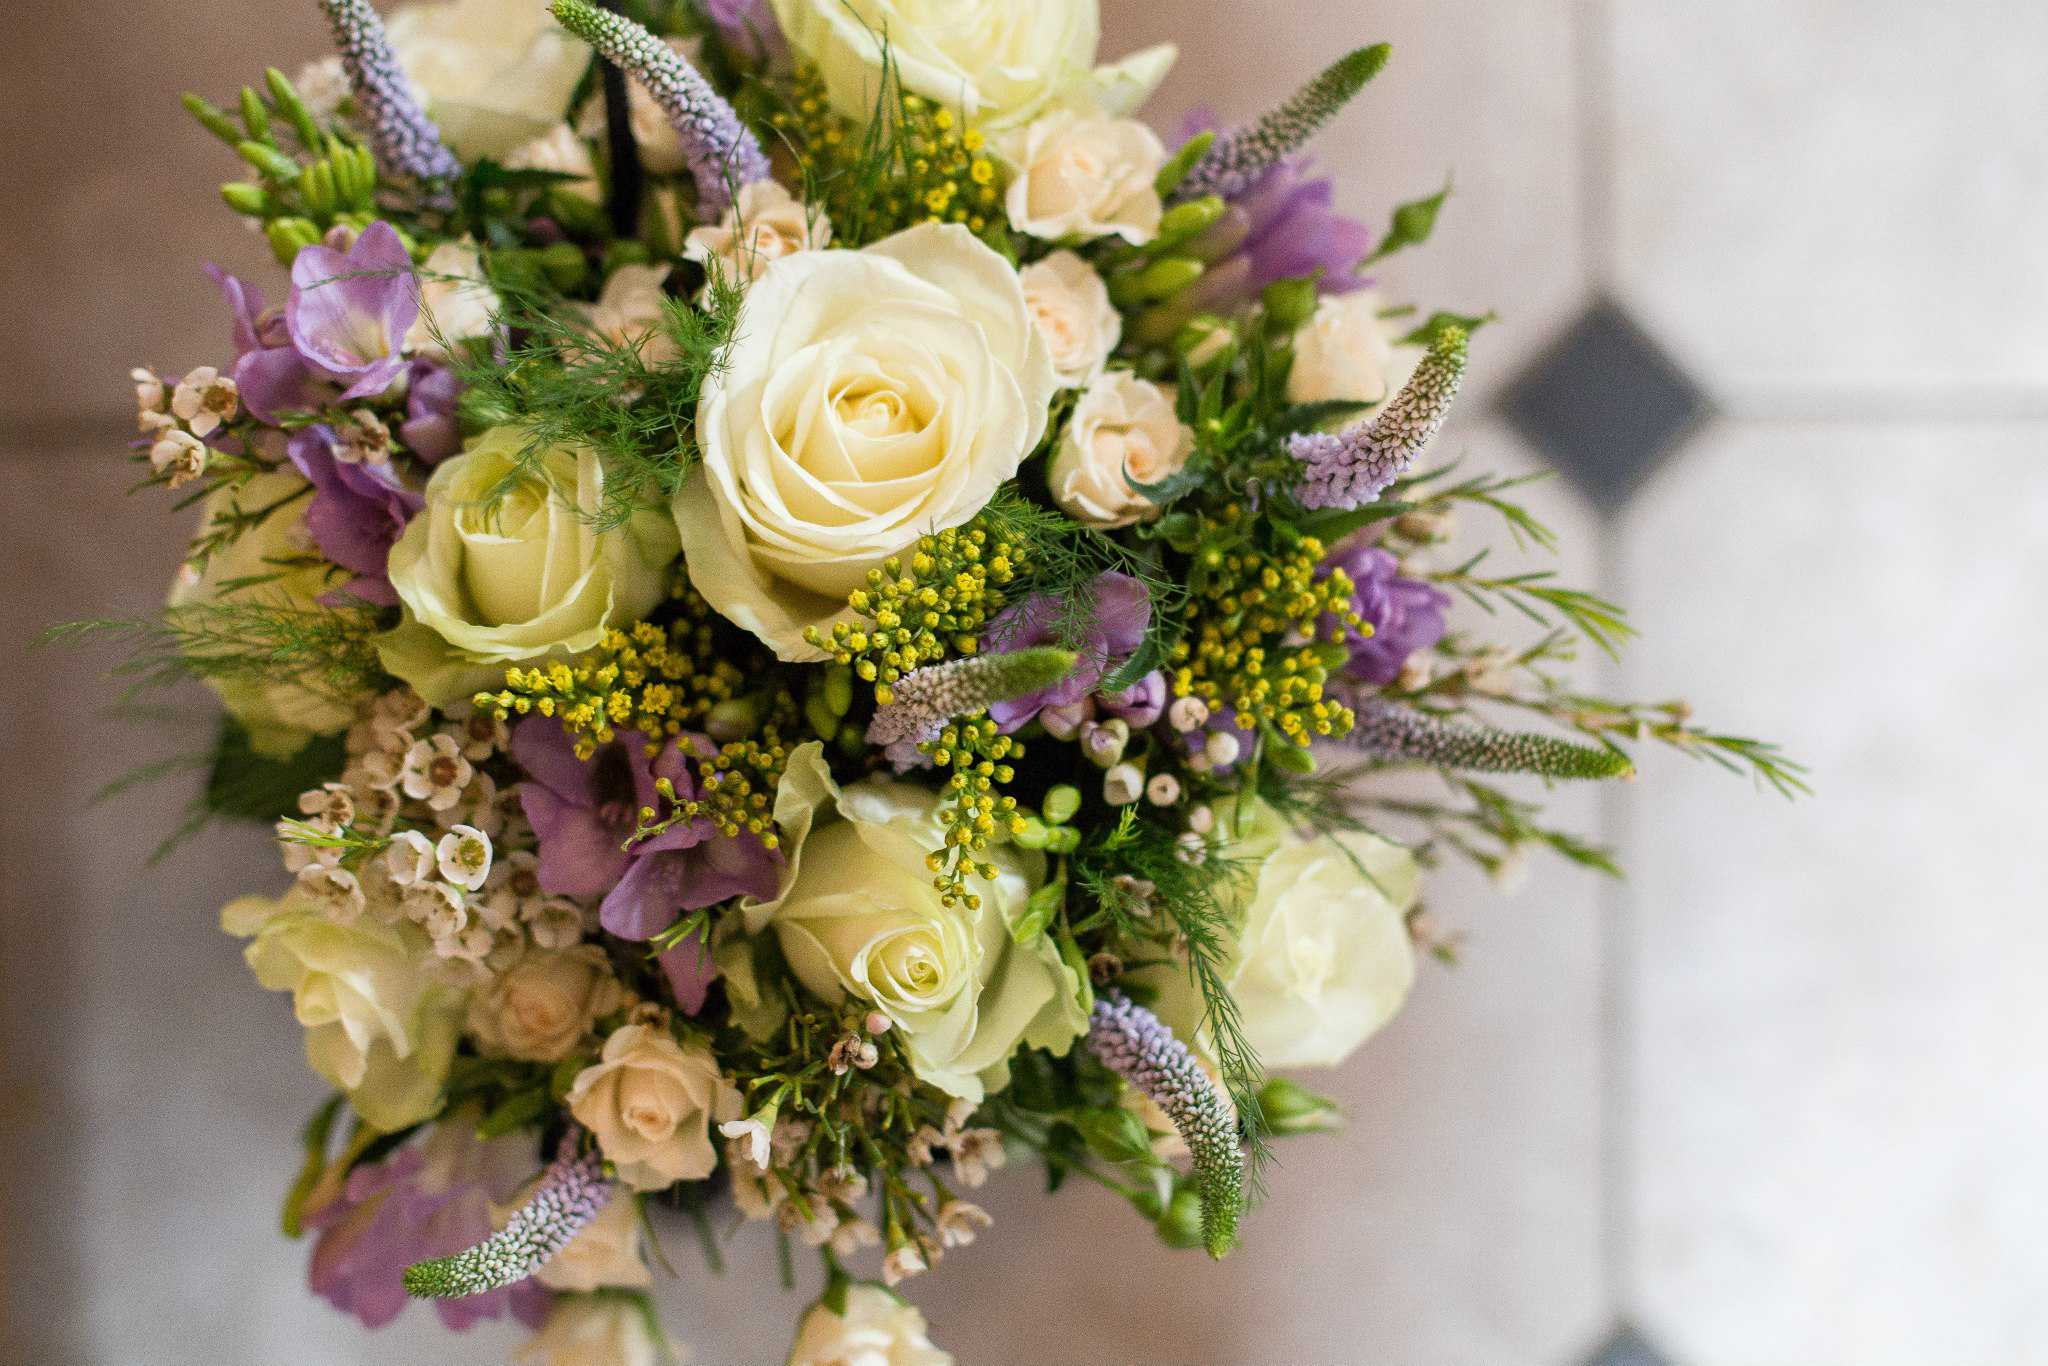 Mike and Siobhan Wedding Flowers